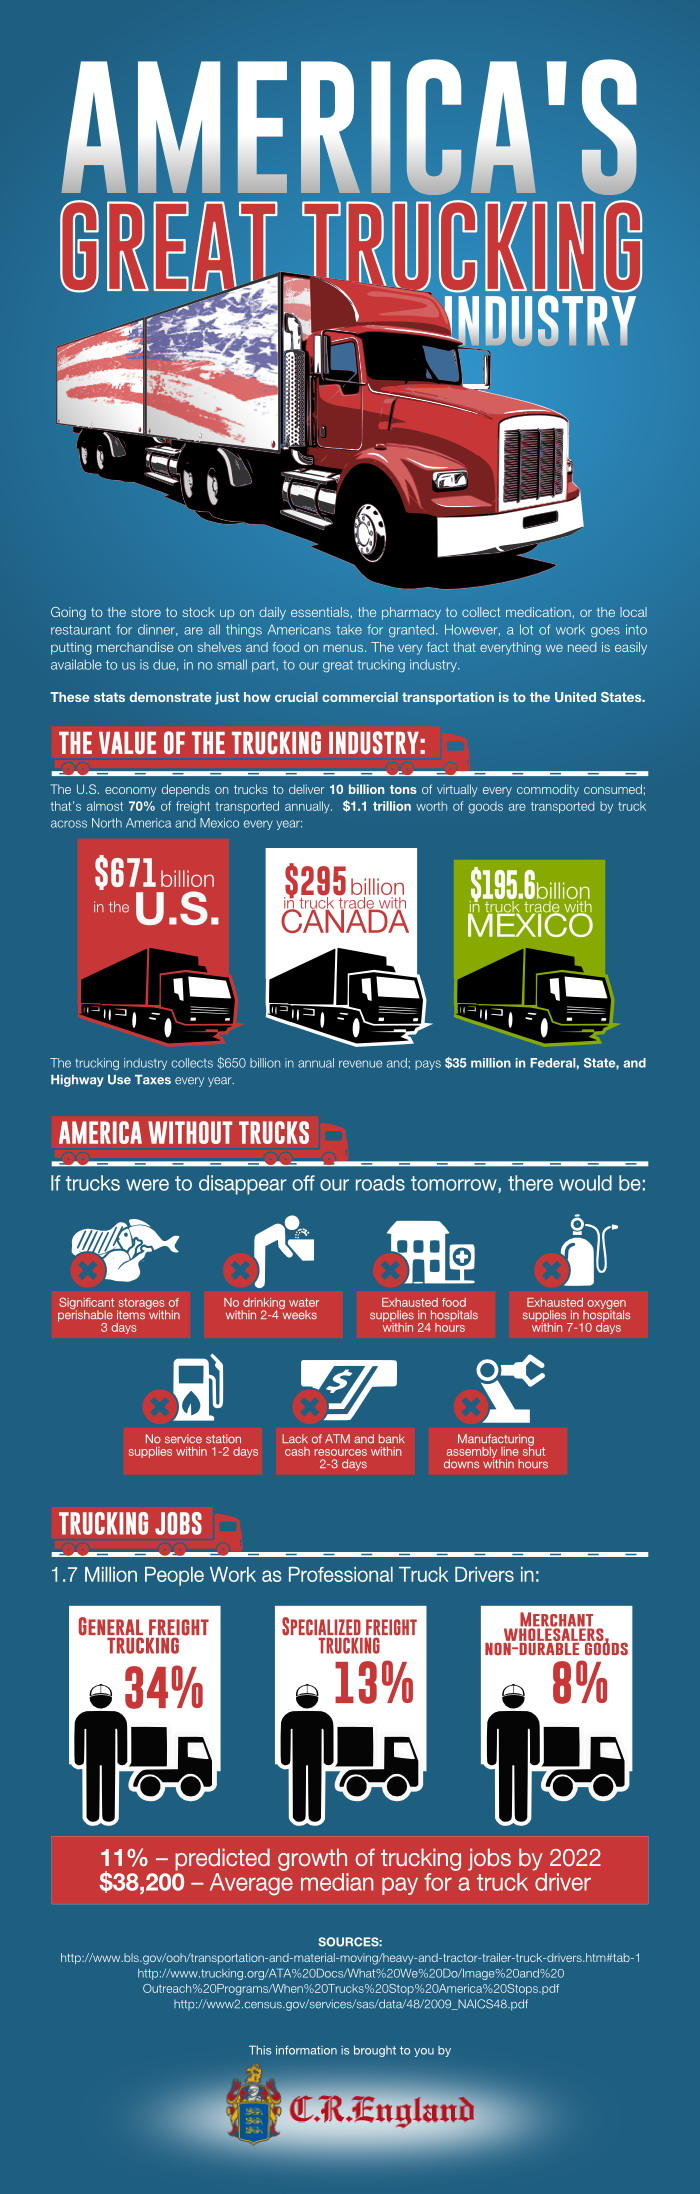 The Amazing Trucking Industry in America [Infographic]